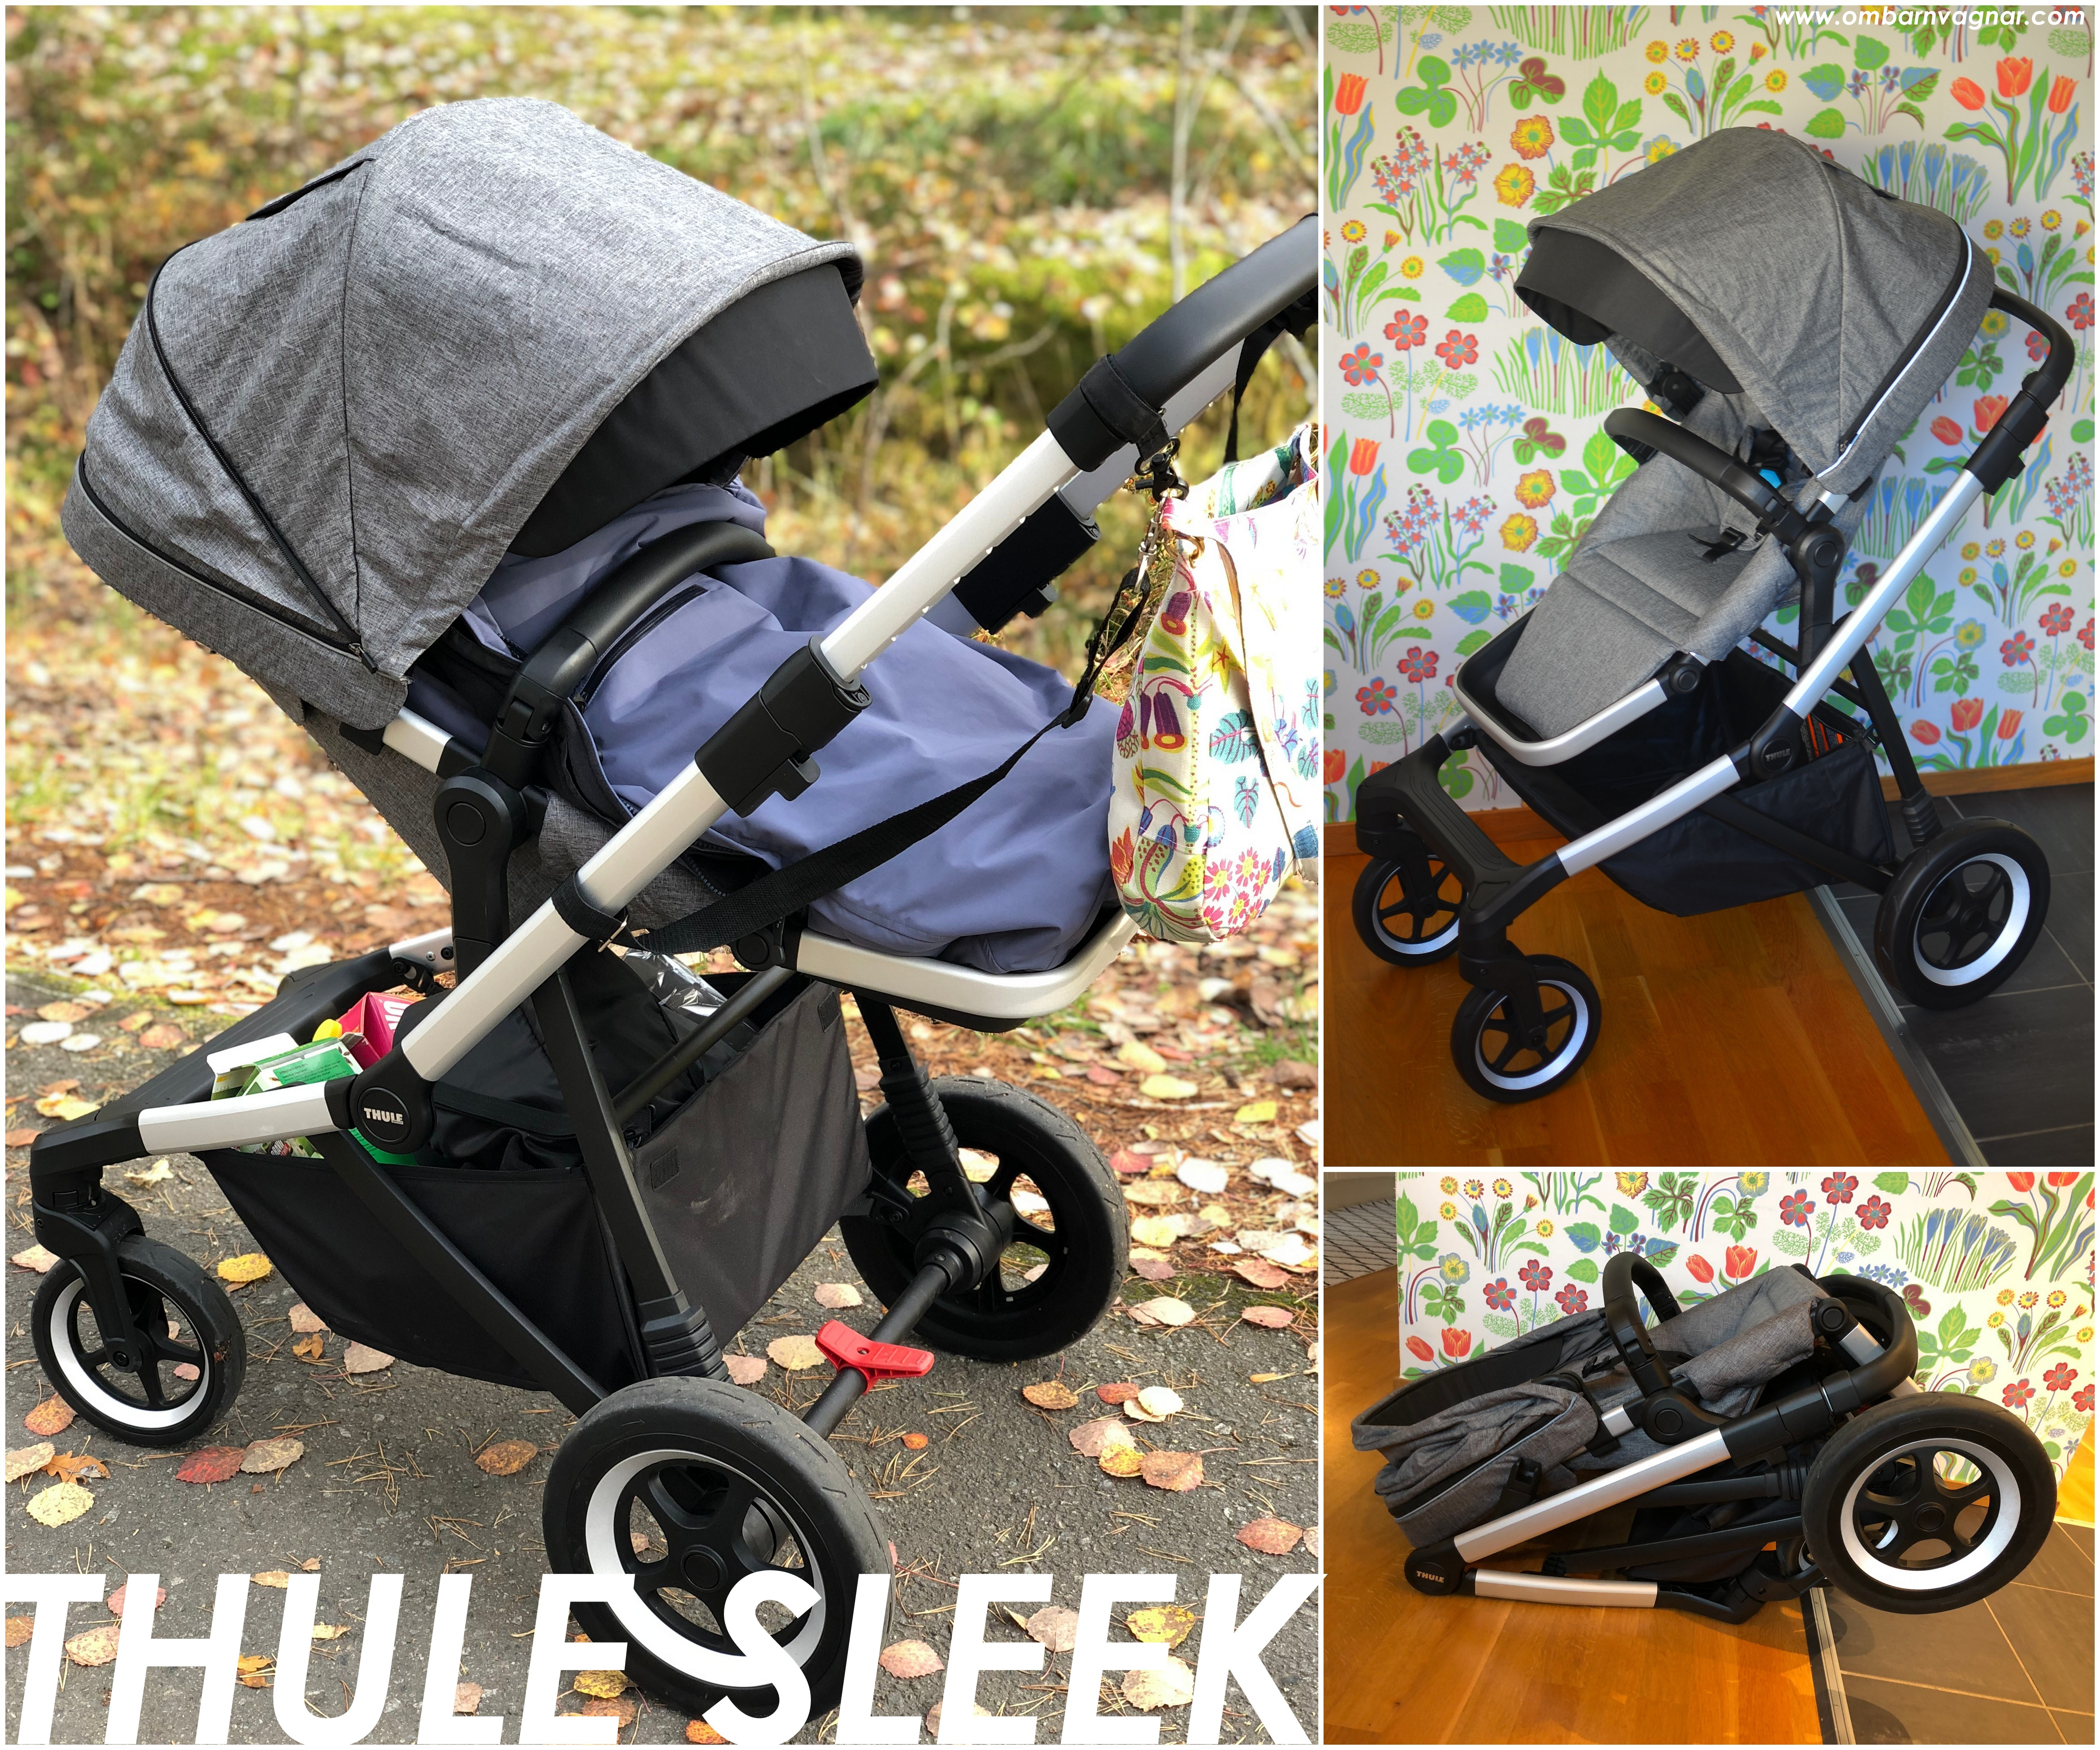 Test av Thule Sleek